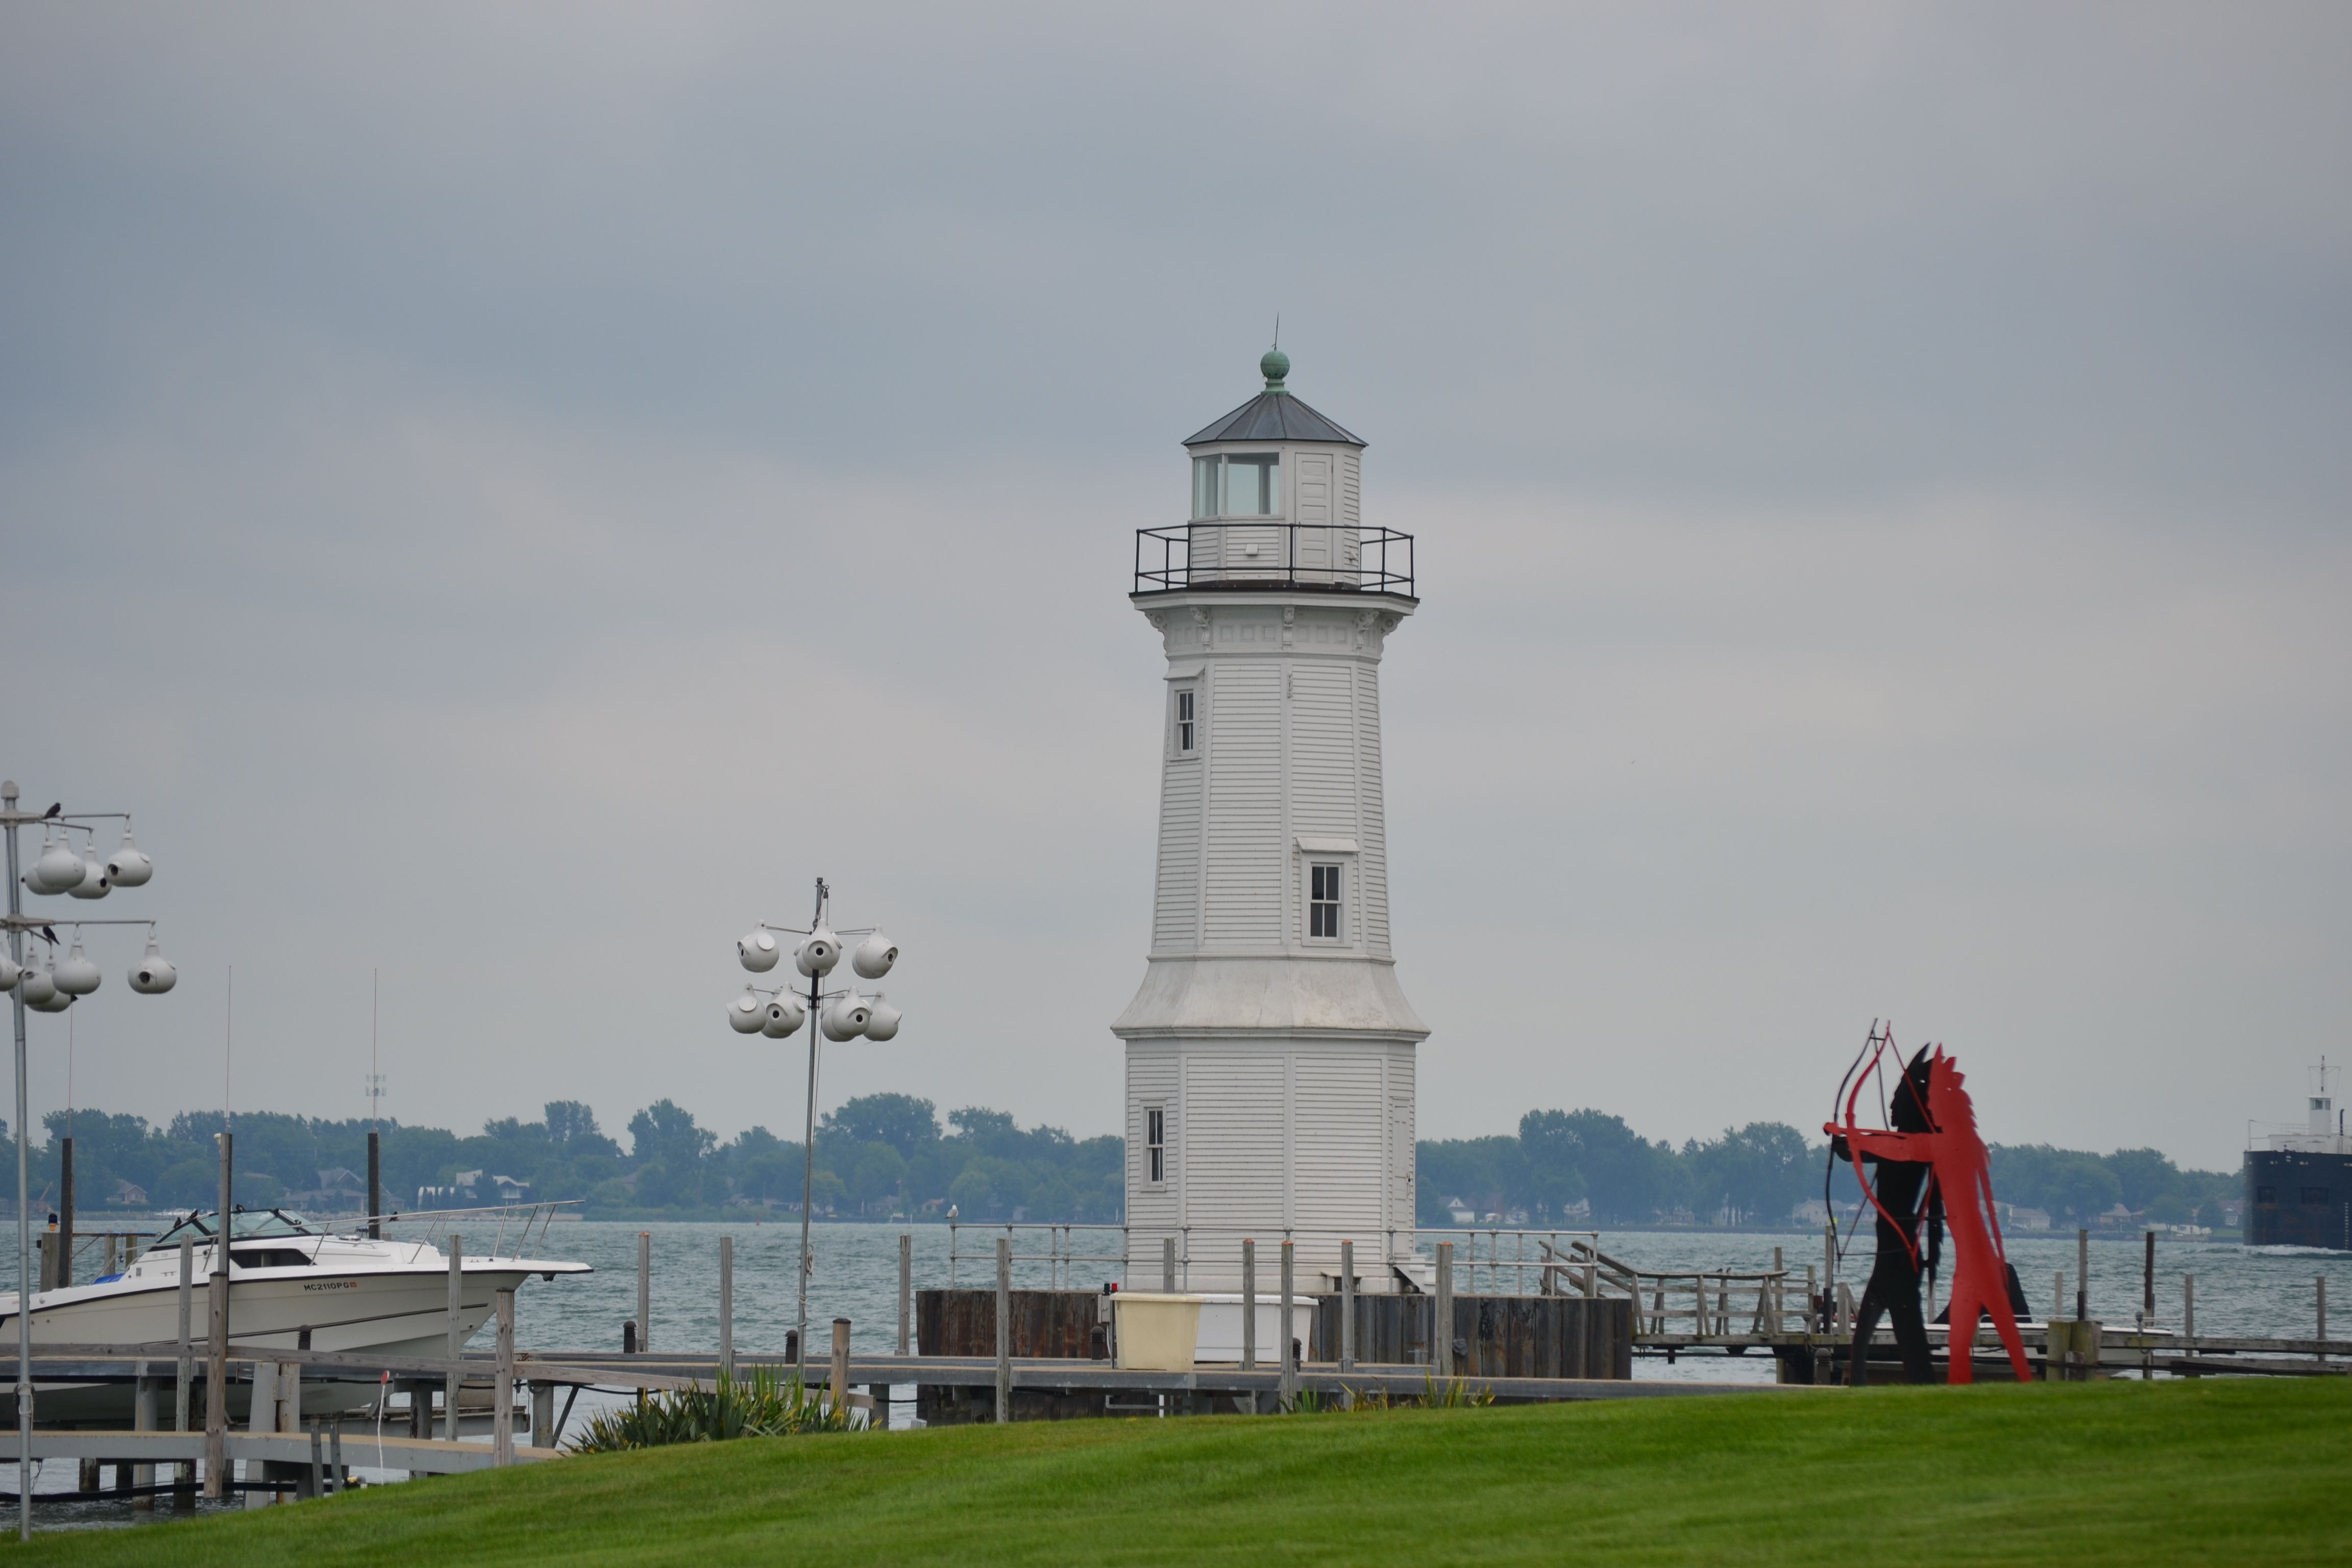 This Is The Grosse Ile Lighthouse In Grosse Ile Michigan It Is